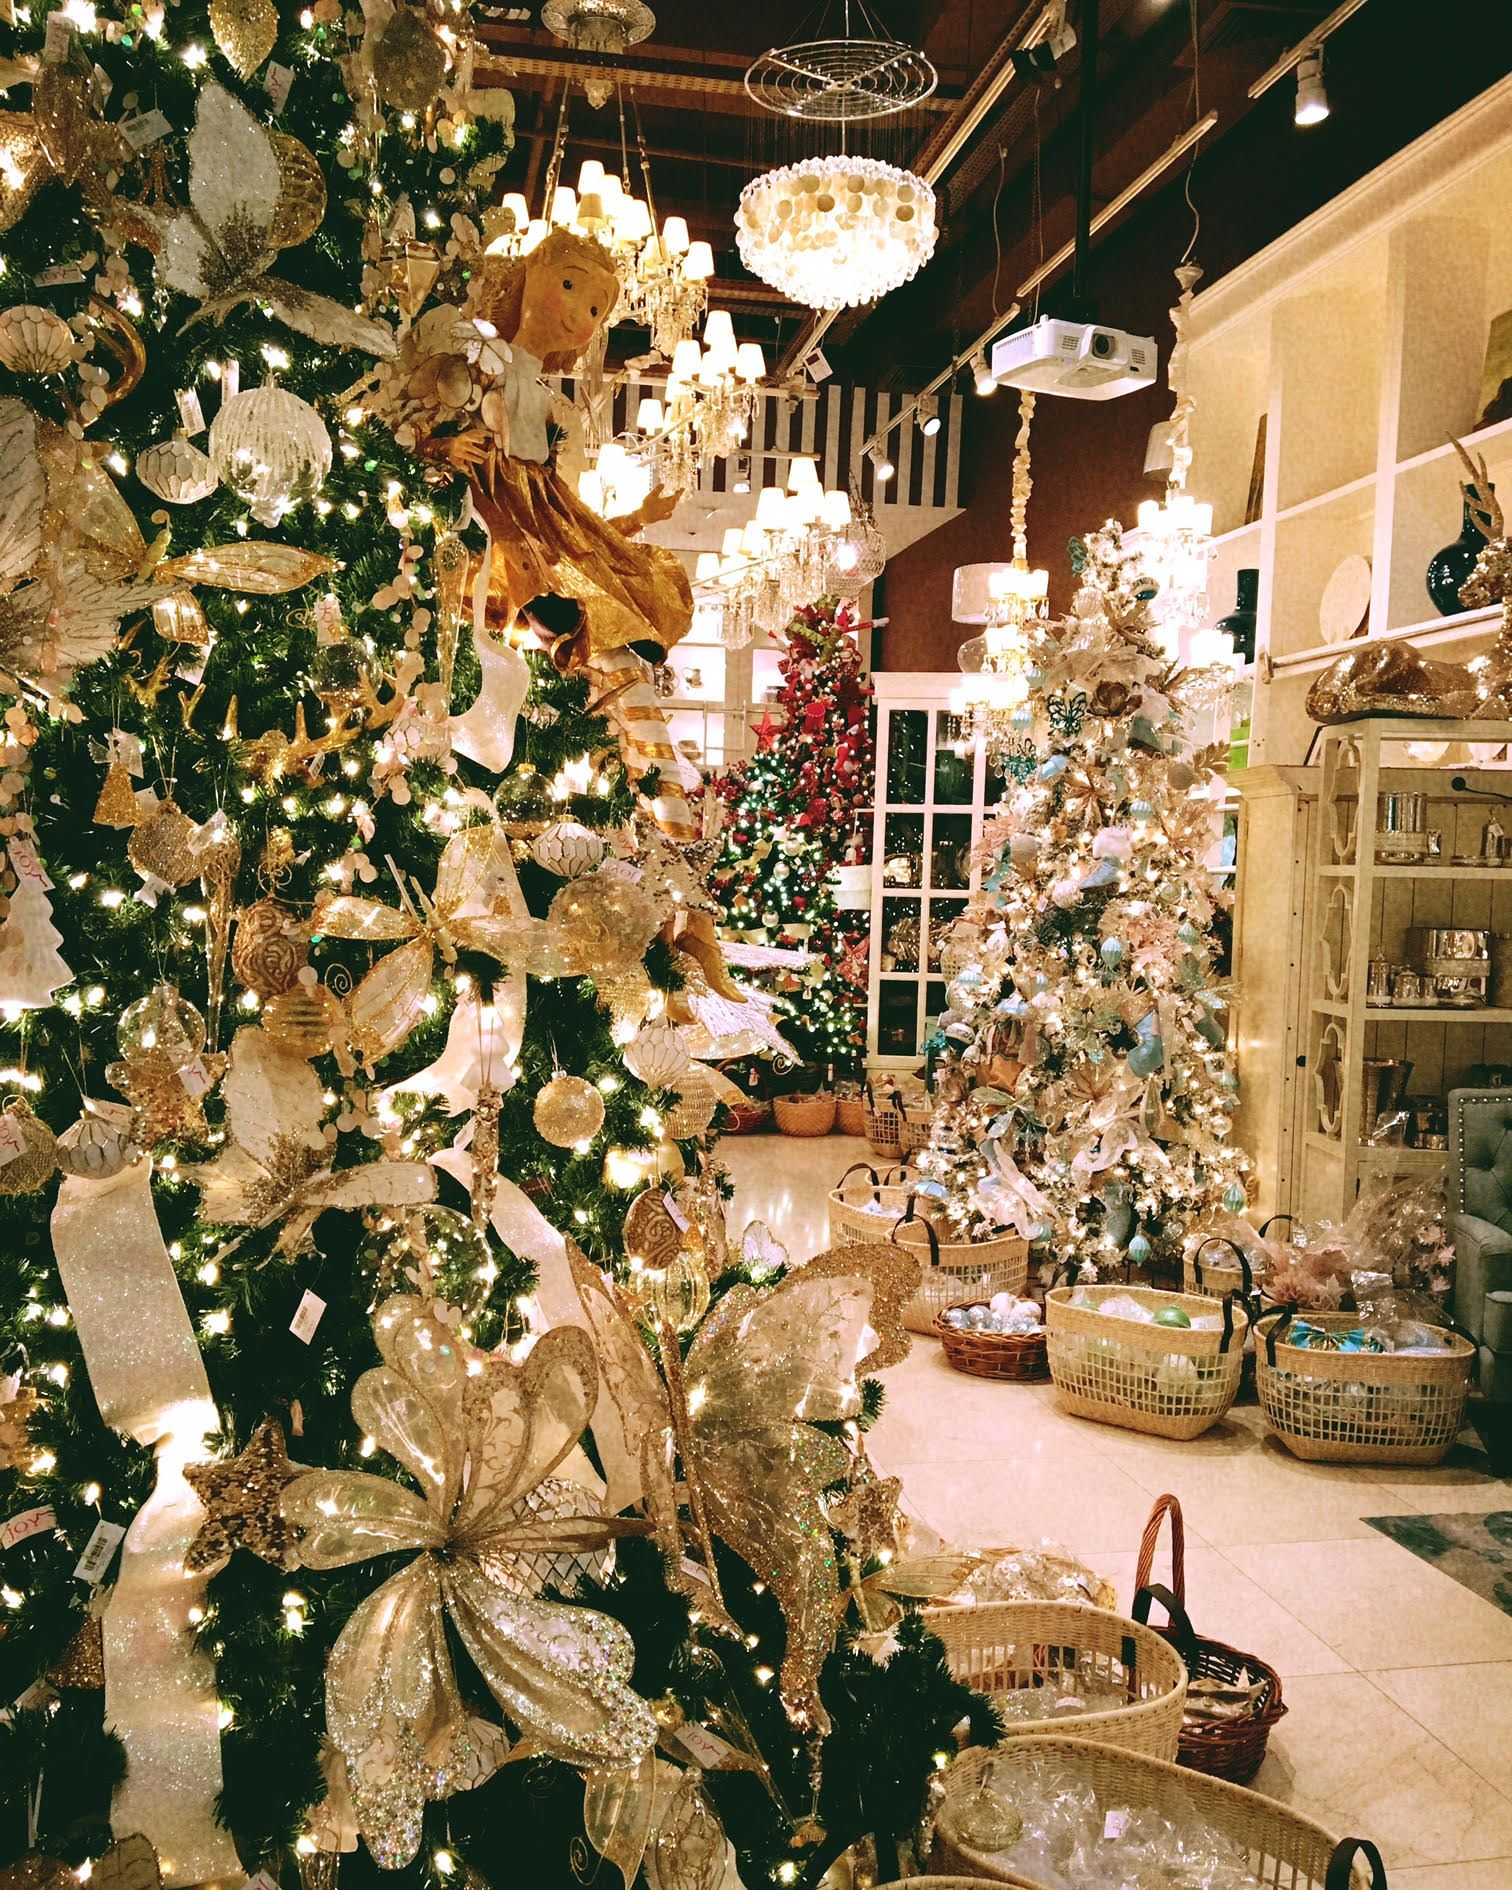 Beautiful Christmas Tree At Irony Home Shop At The Dubai